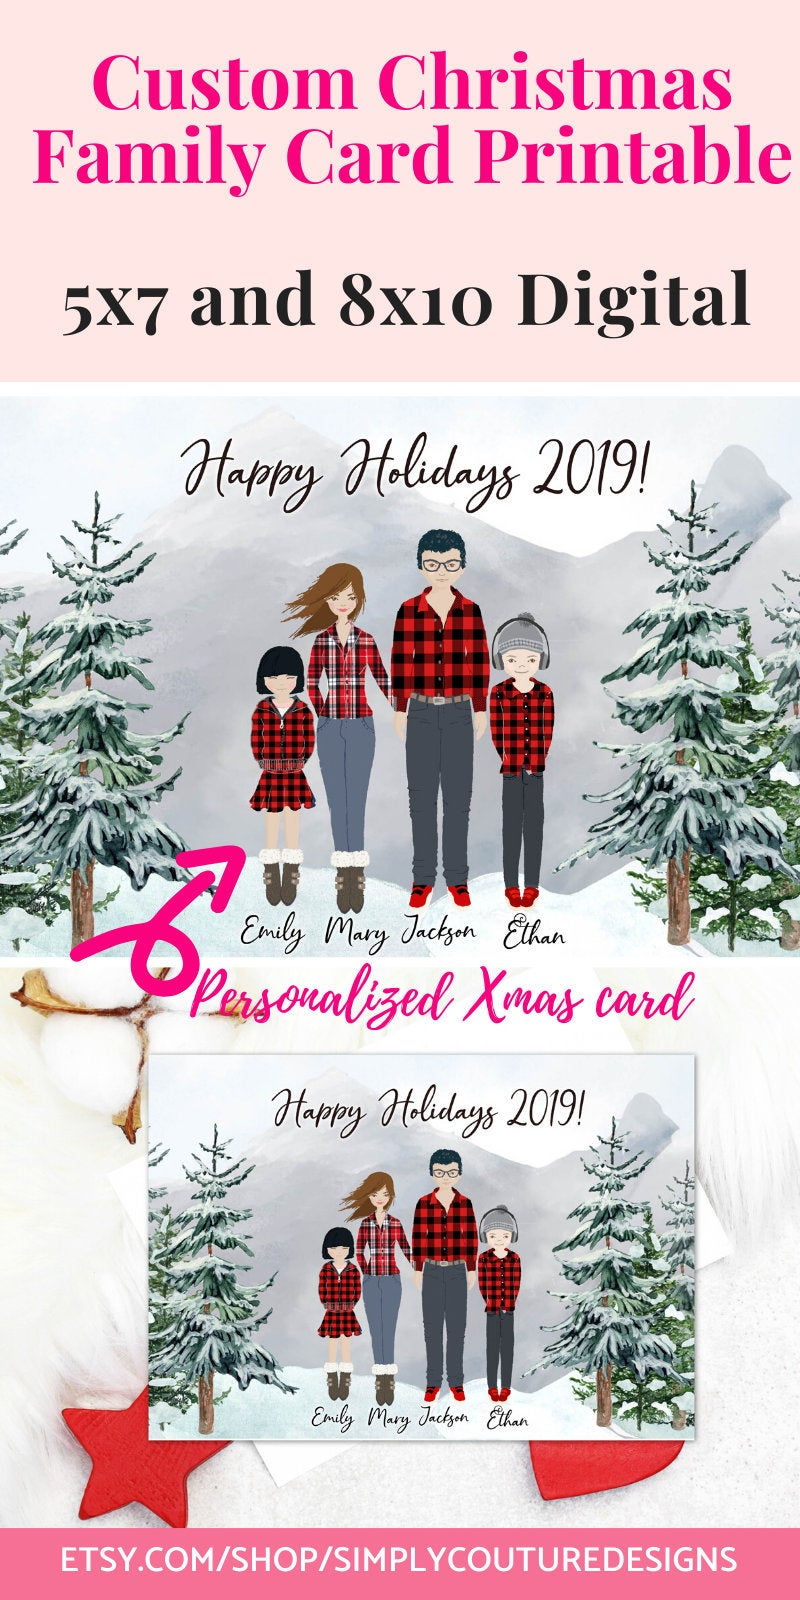 Personalized Christmas Cards Printable Custom Family Portrait Etsy Custom Illustrated Holiday Cards Personalised Christmas Cards Personalized Holiday Cards